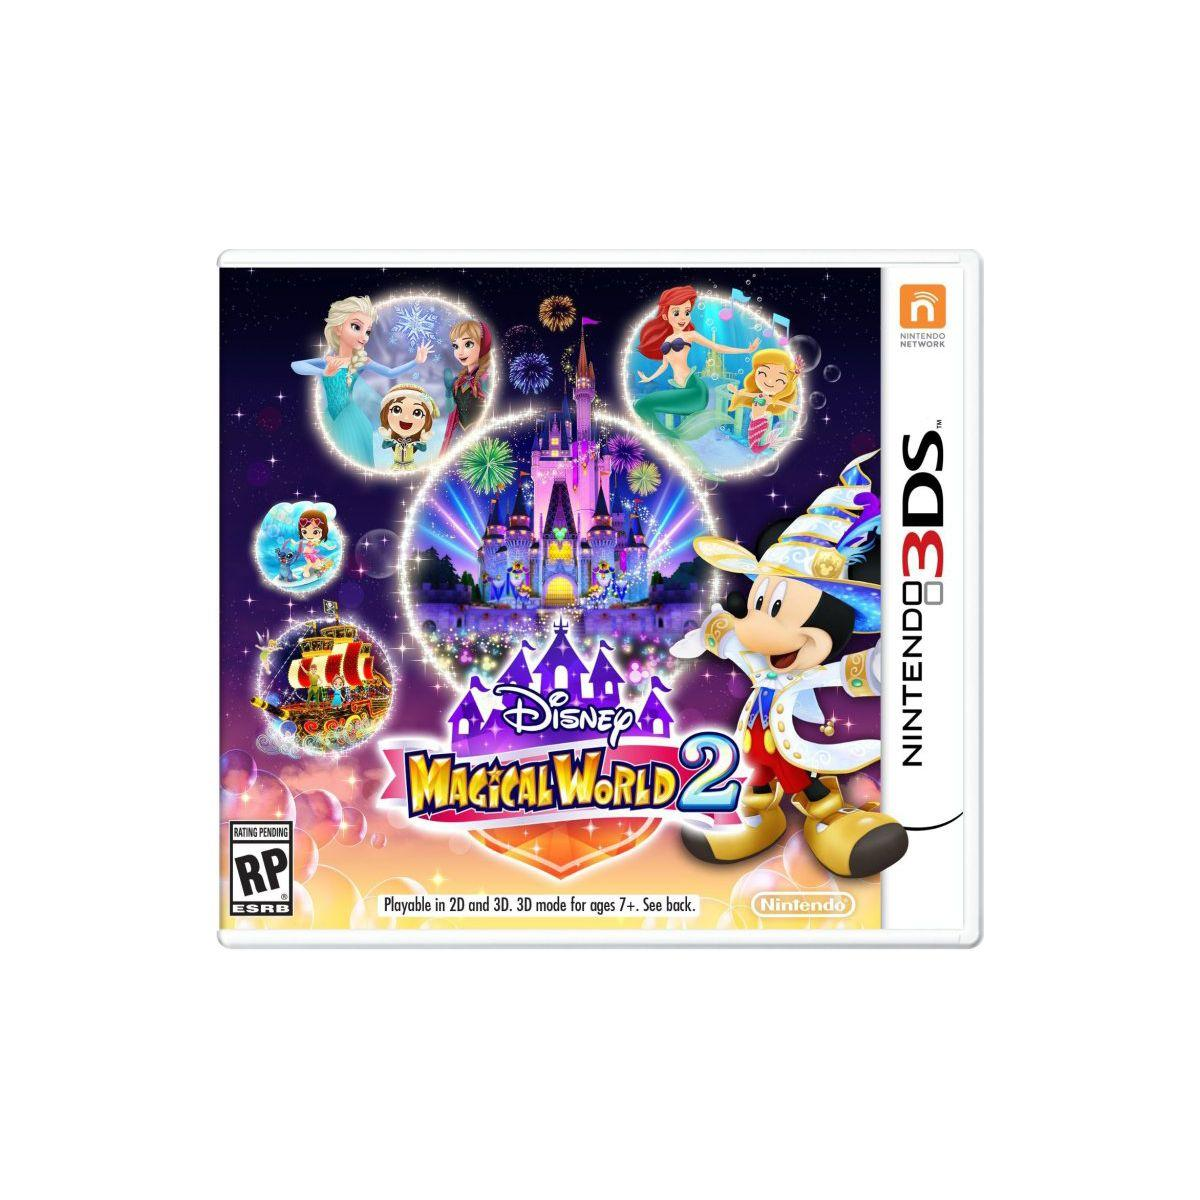 Jeu 3ds nintendo disney magical world 2 - 2% de remise immédiate avec le code : cool2 (photo)